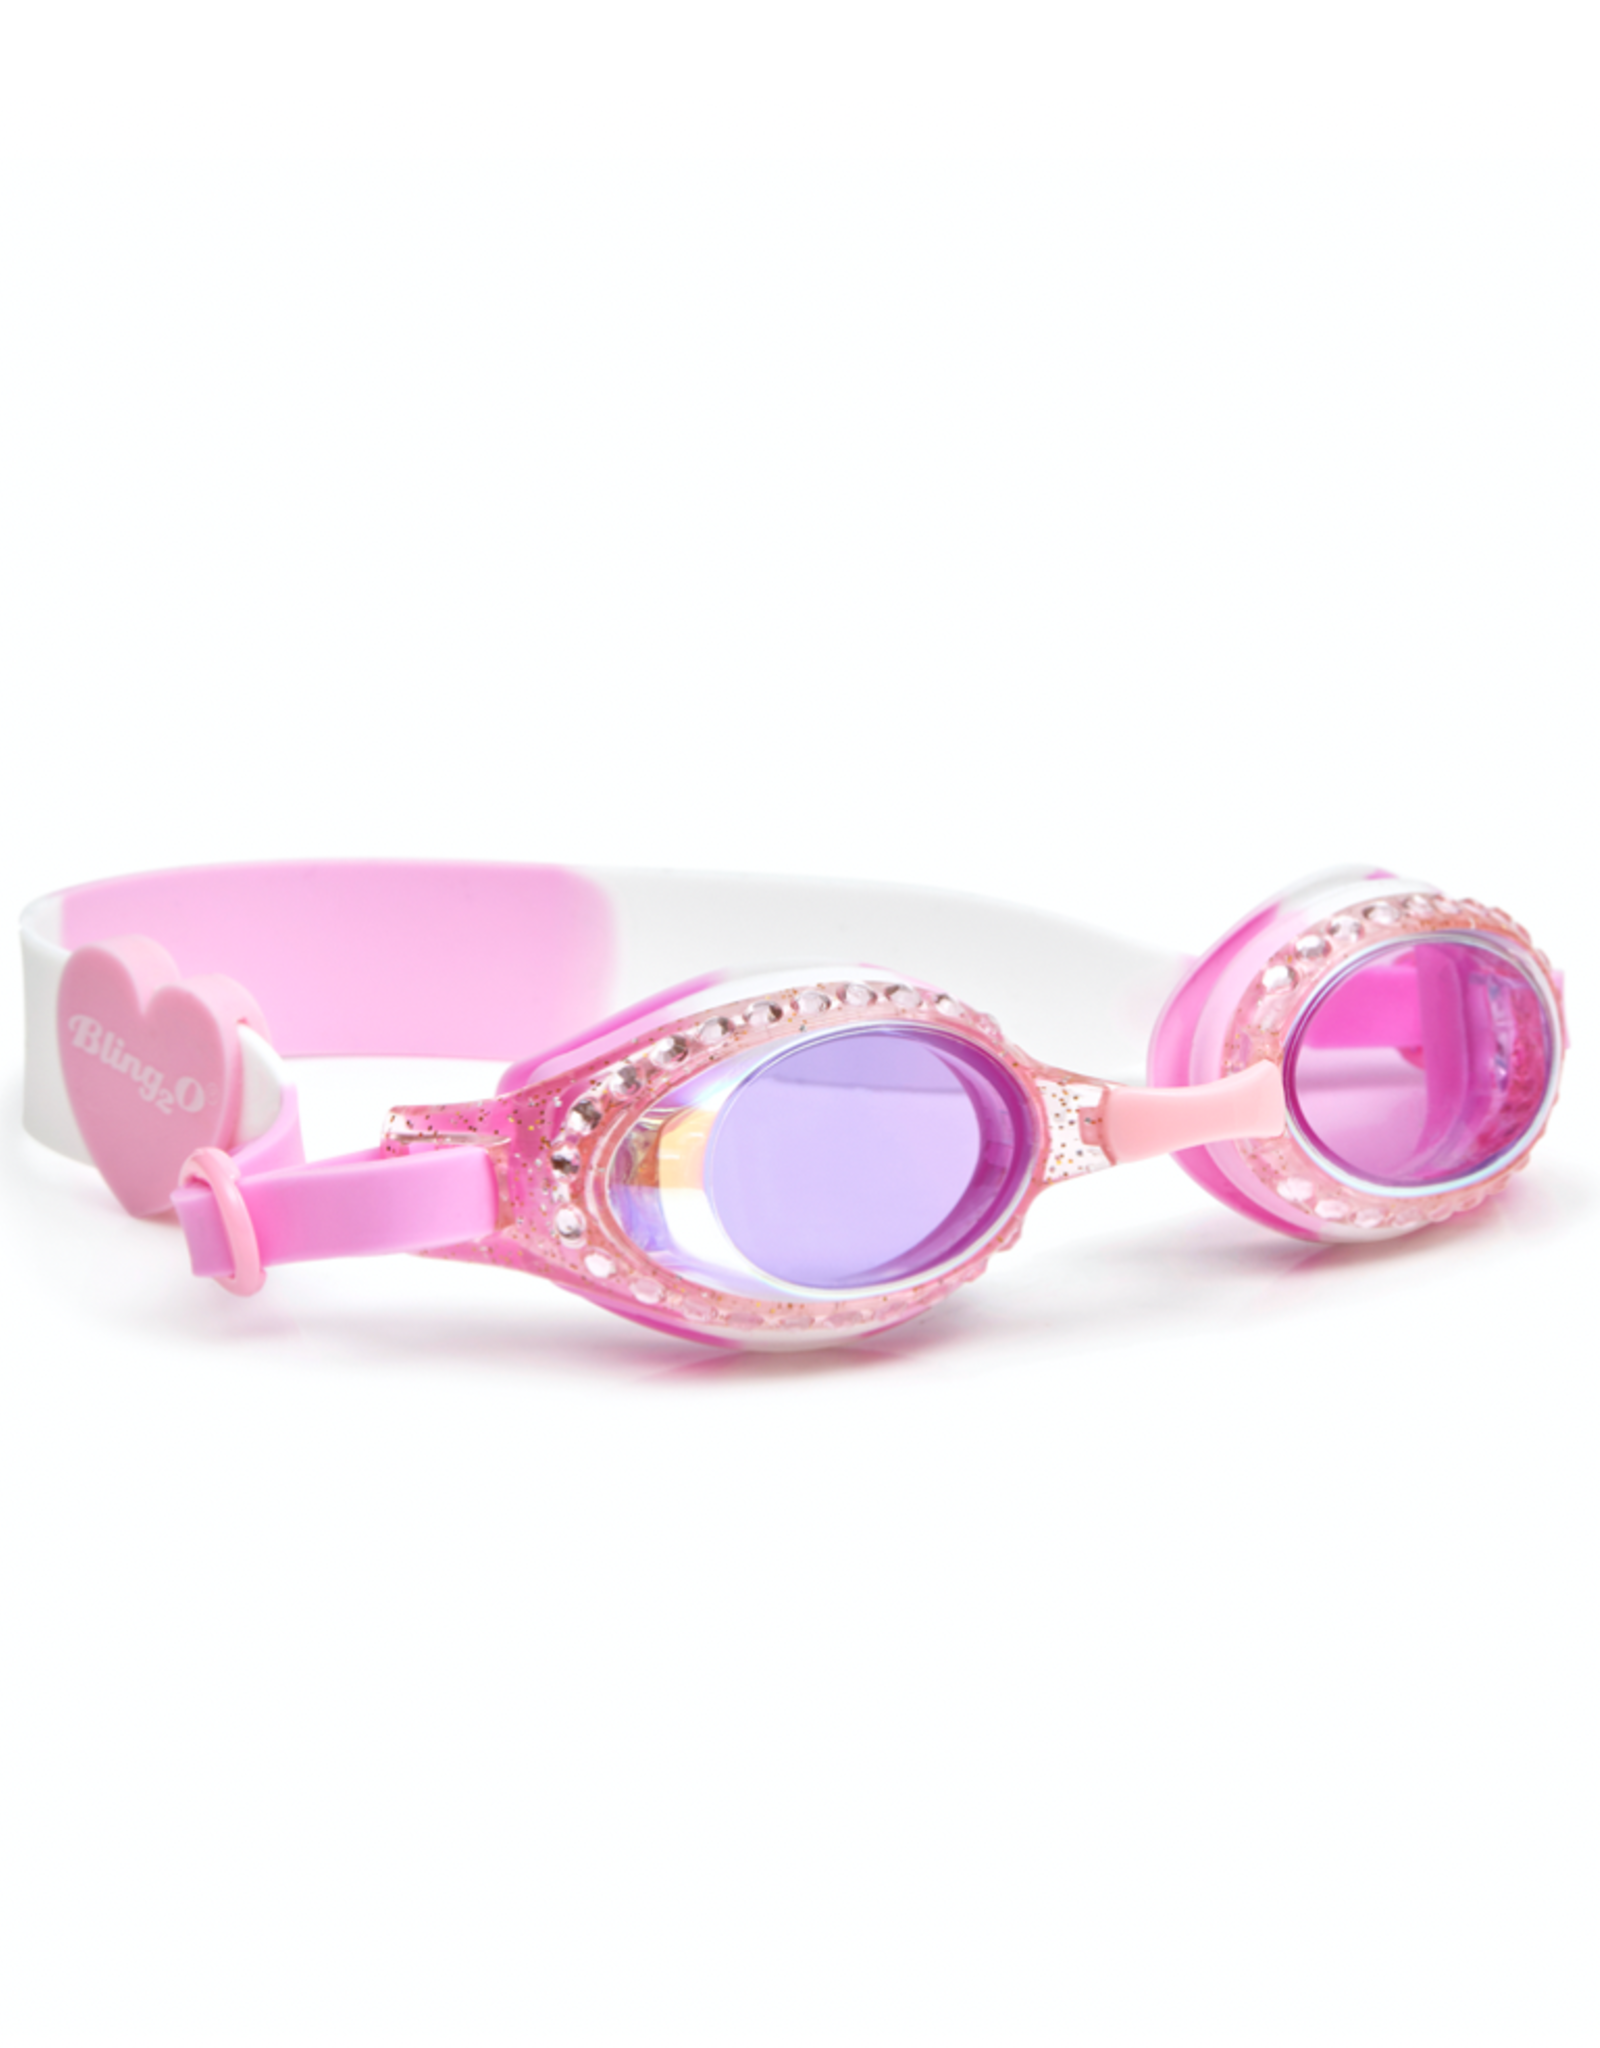 Bling2o Bling2o Goggles - Classic Edition White Cherry Blossom